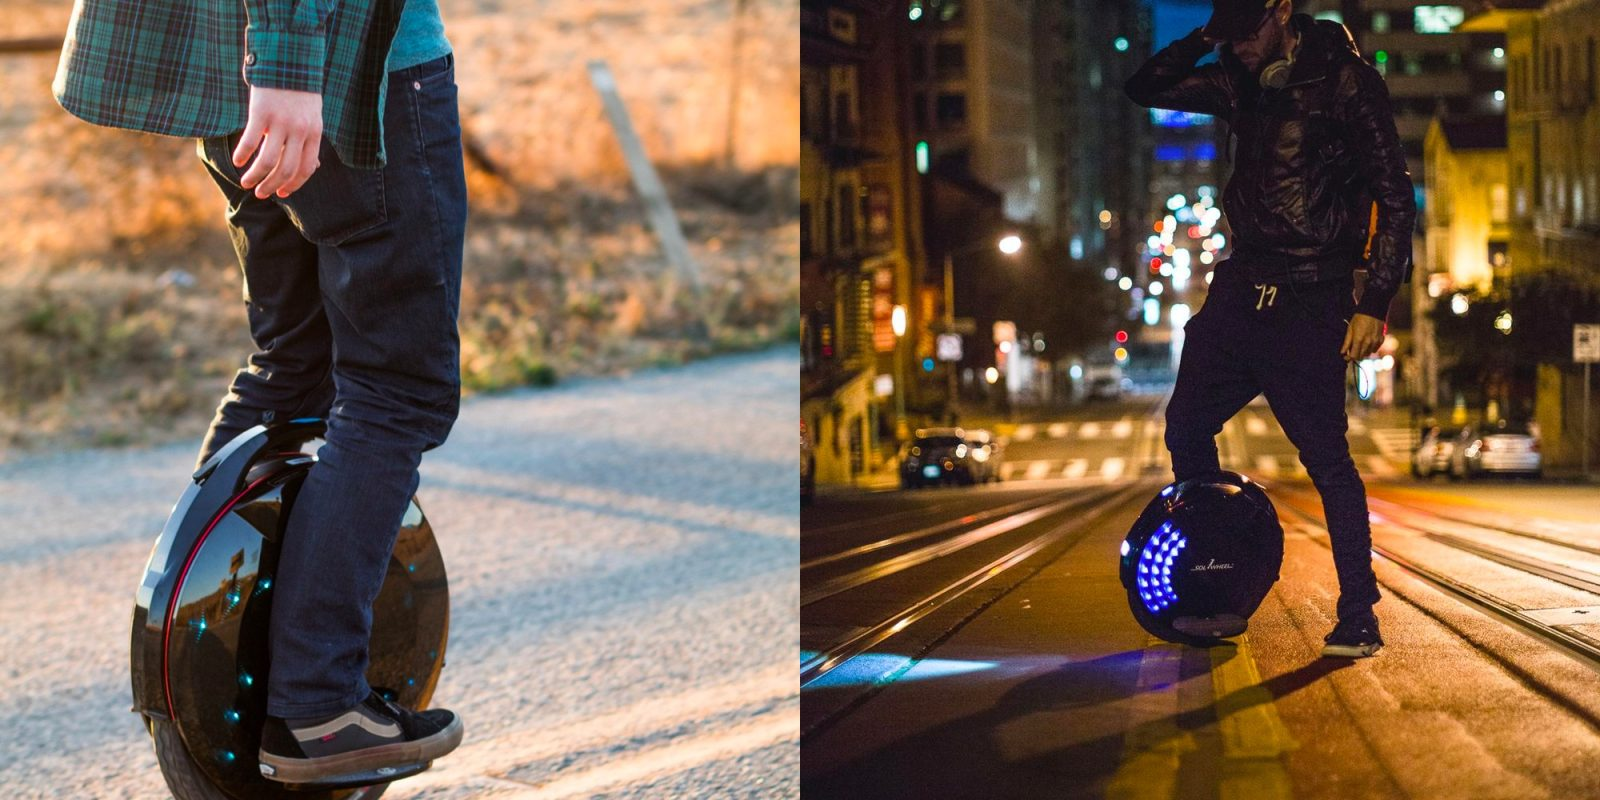 Electric Unicycles Fun Toys Or Serious Last Mile Commuter Vehicles